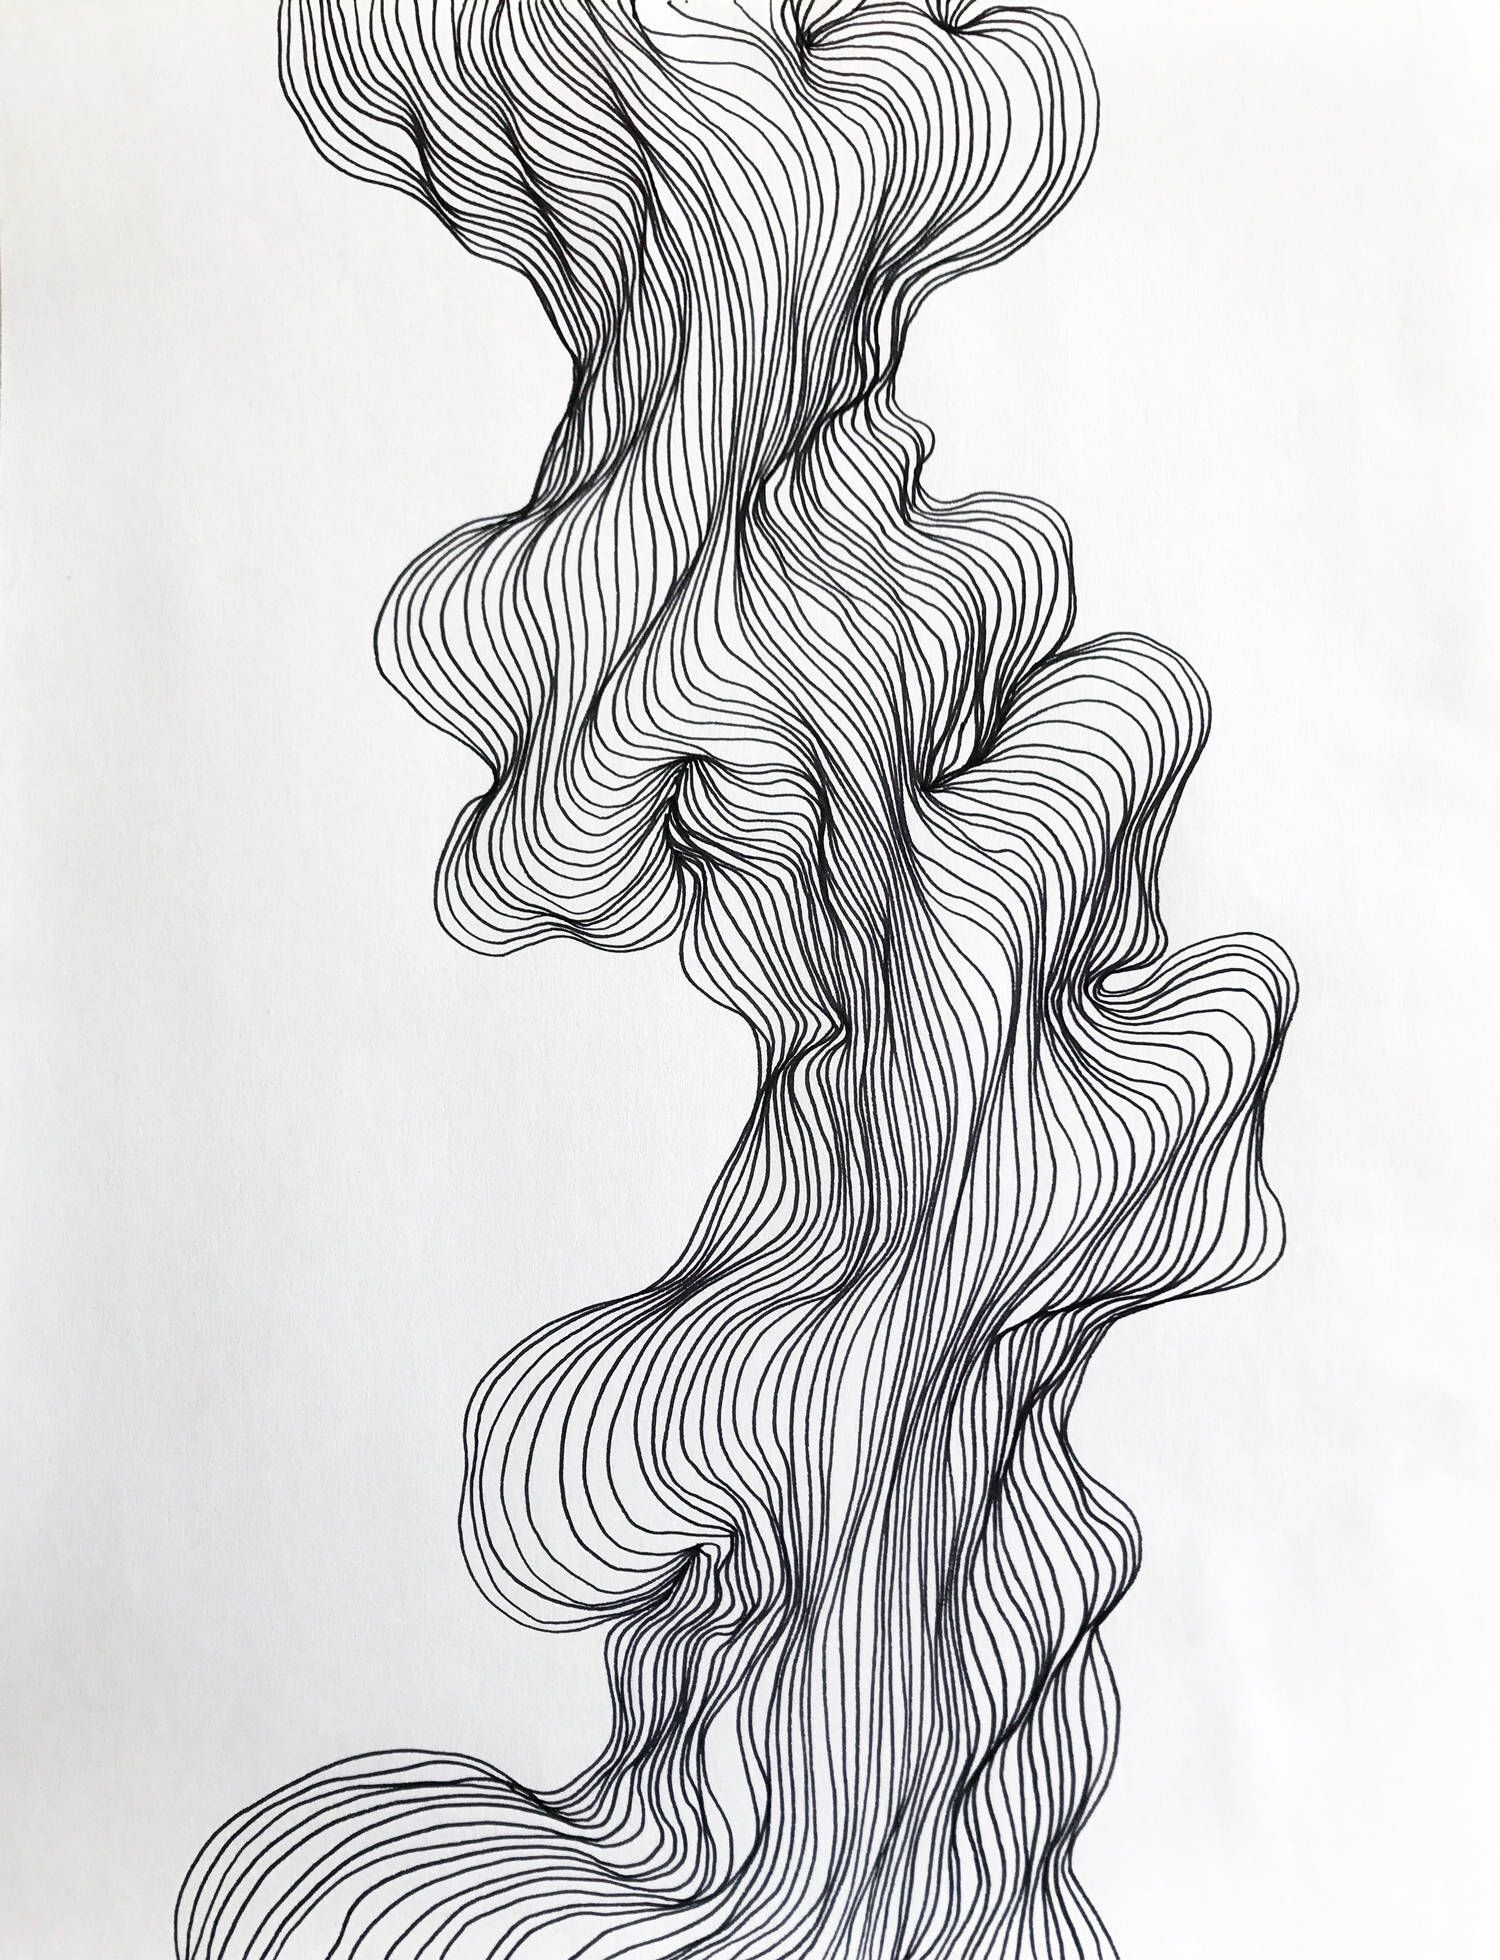 Line Drawing Abstract : Abstract line art black and white modern drawing organic